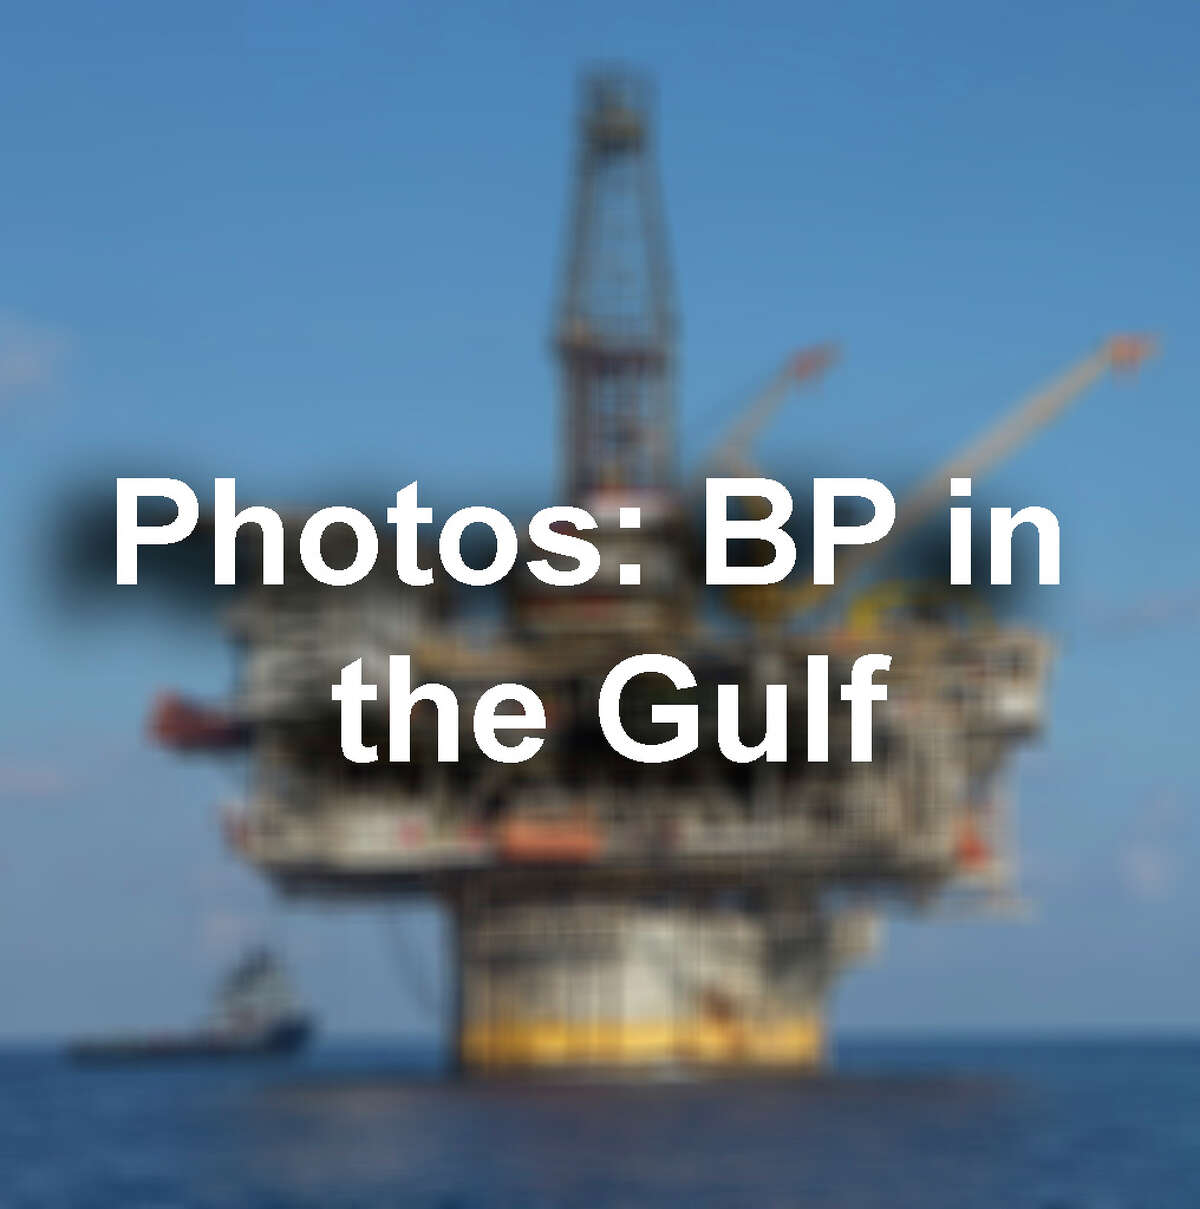 See photos of BP drilling operations in the Gulf of Mexico...